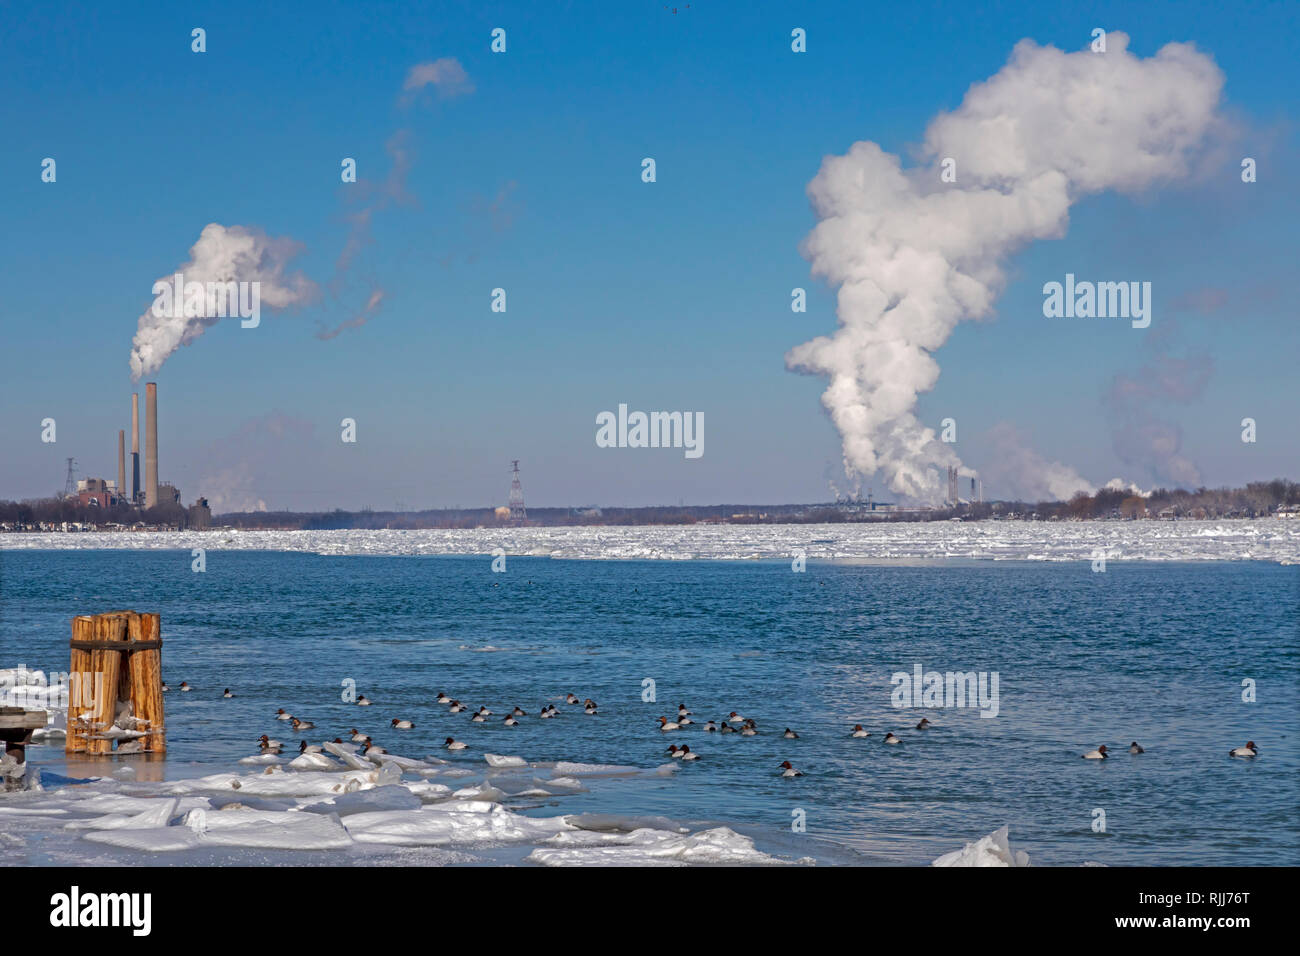 Marine City, Michigan - Coal-fired power plants and chemical plants line the ice-filled St. Clair River. Canvasback ducks swim in the open water near  - Stock Image